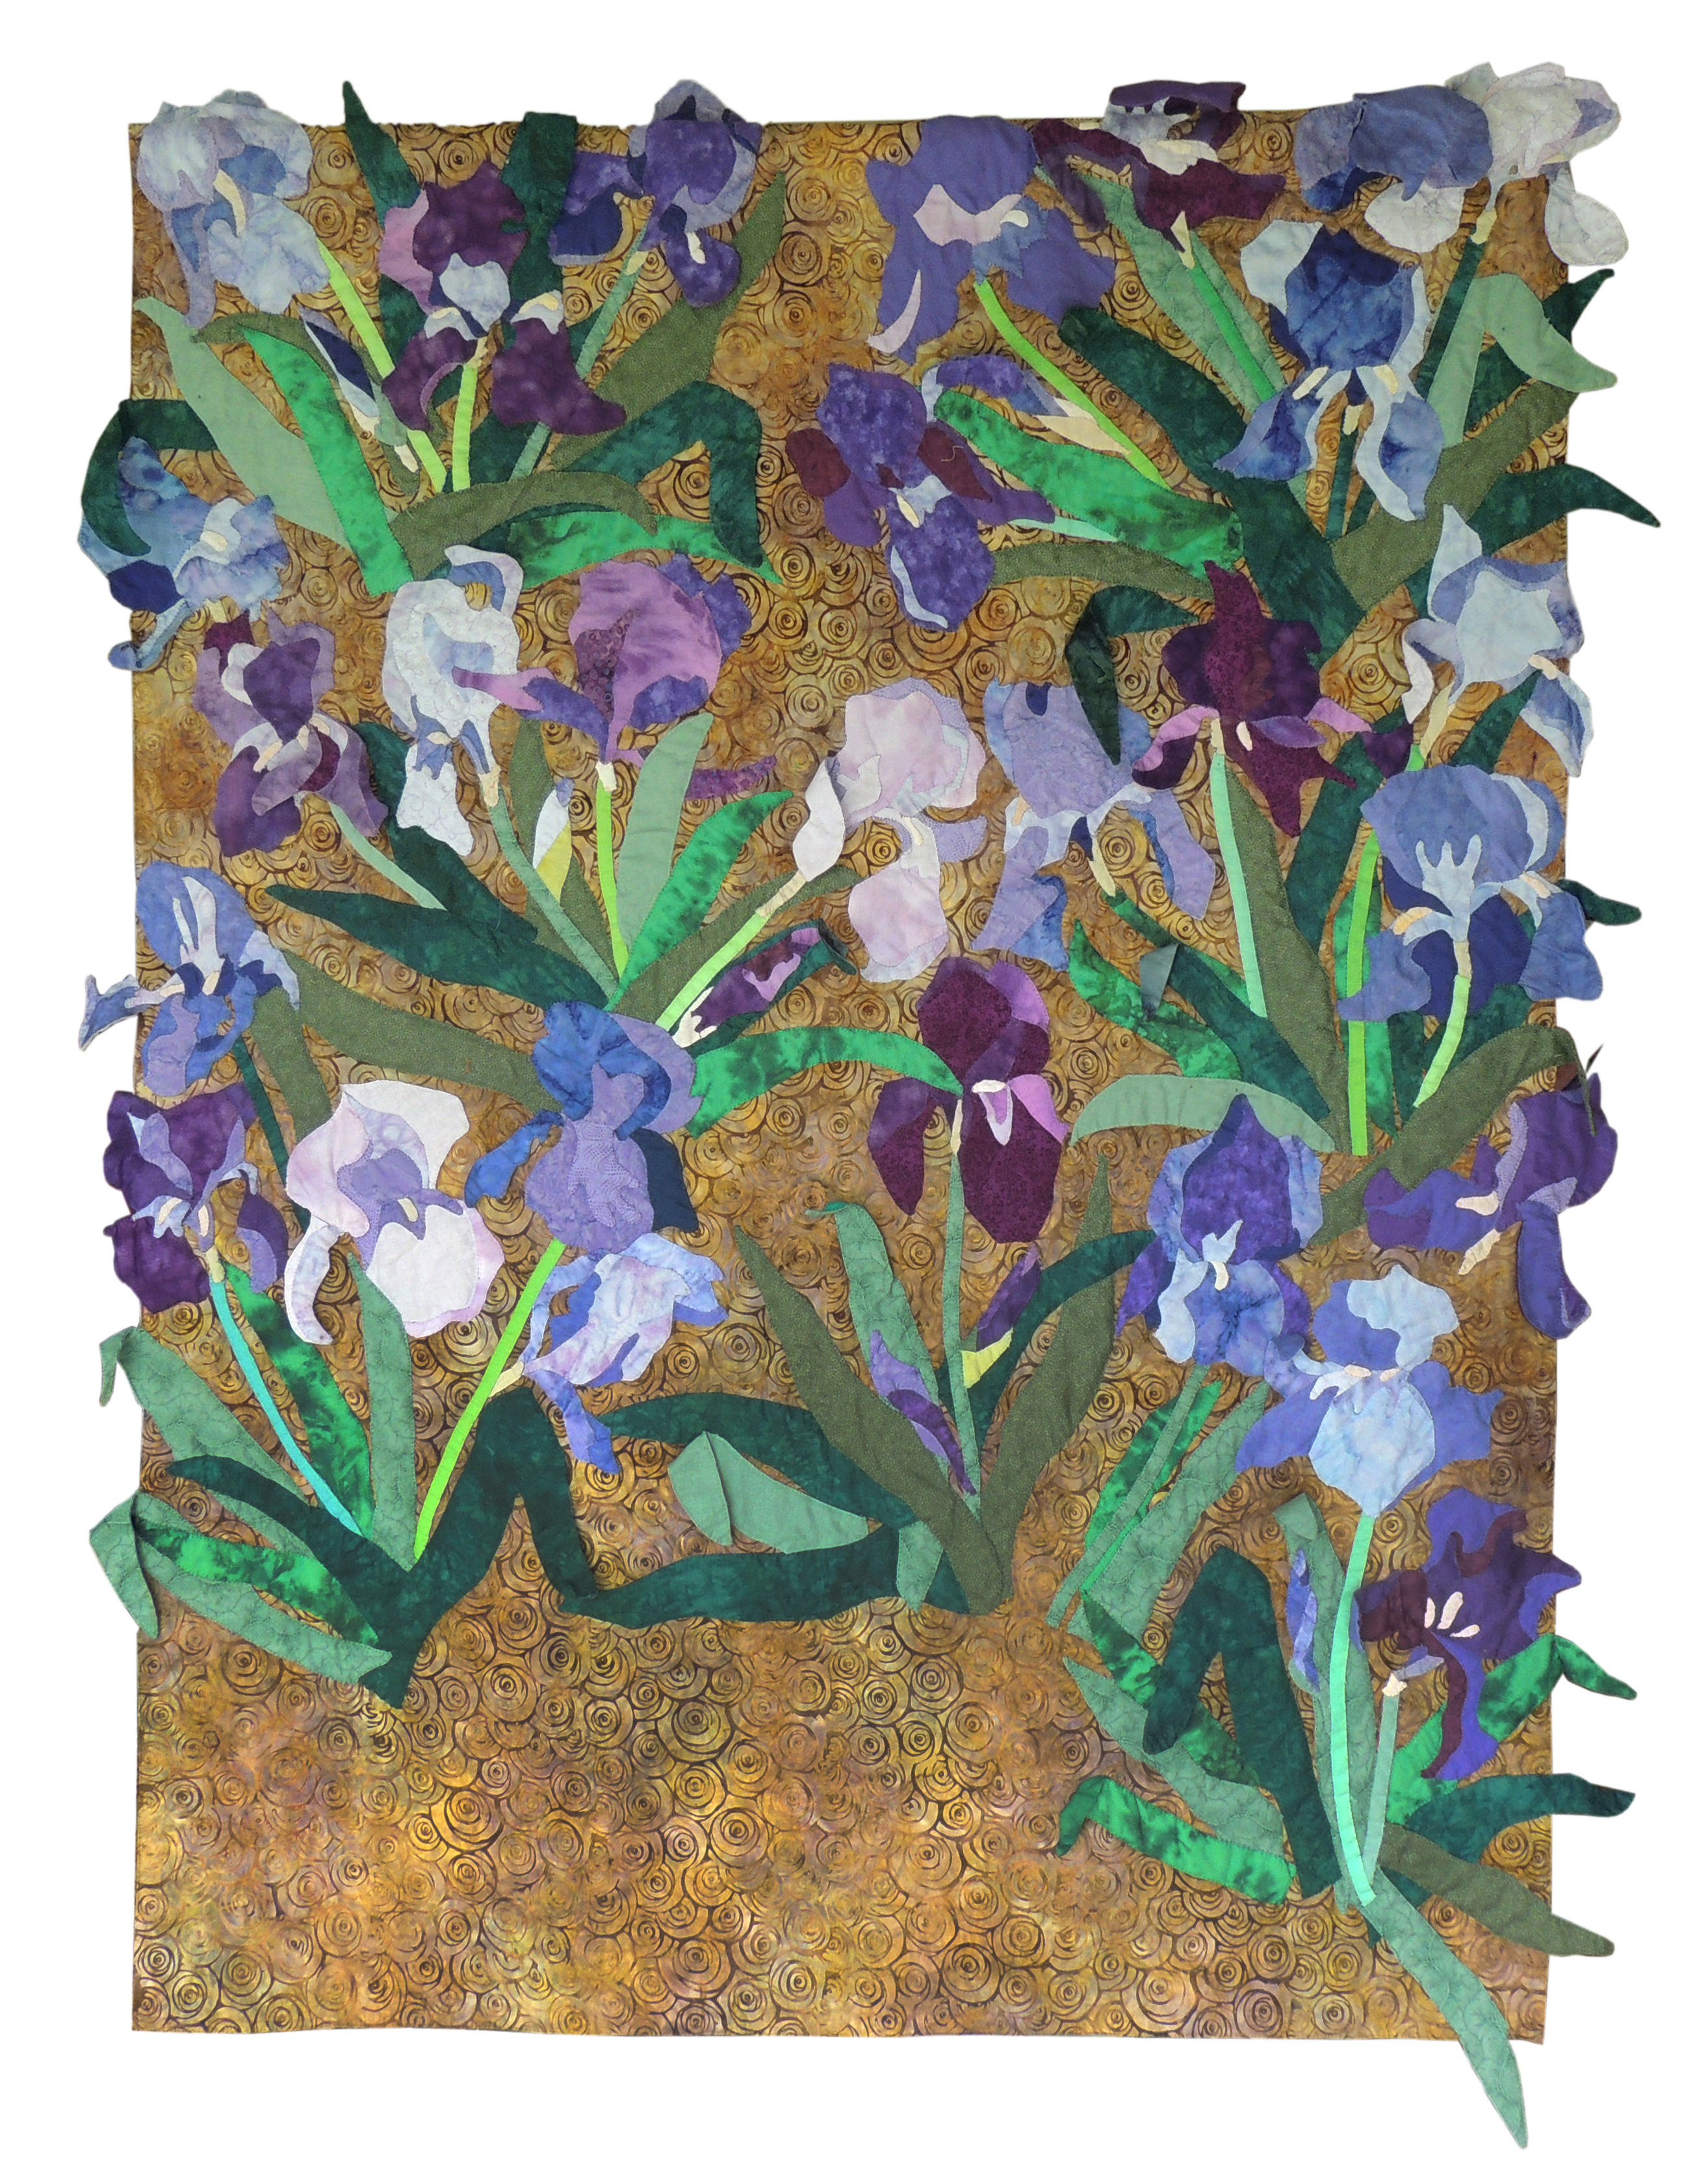 Marianne Rabb Britton | IRISES | Fabric & Embroidery | 59 x 49"